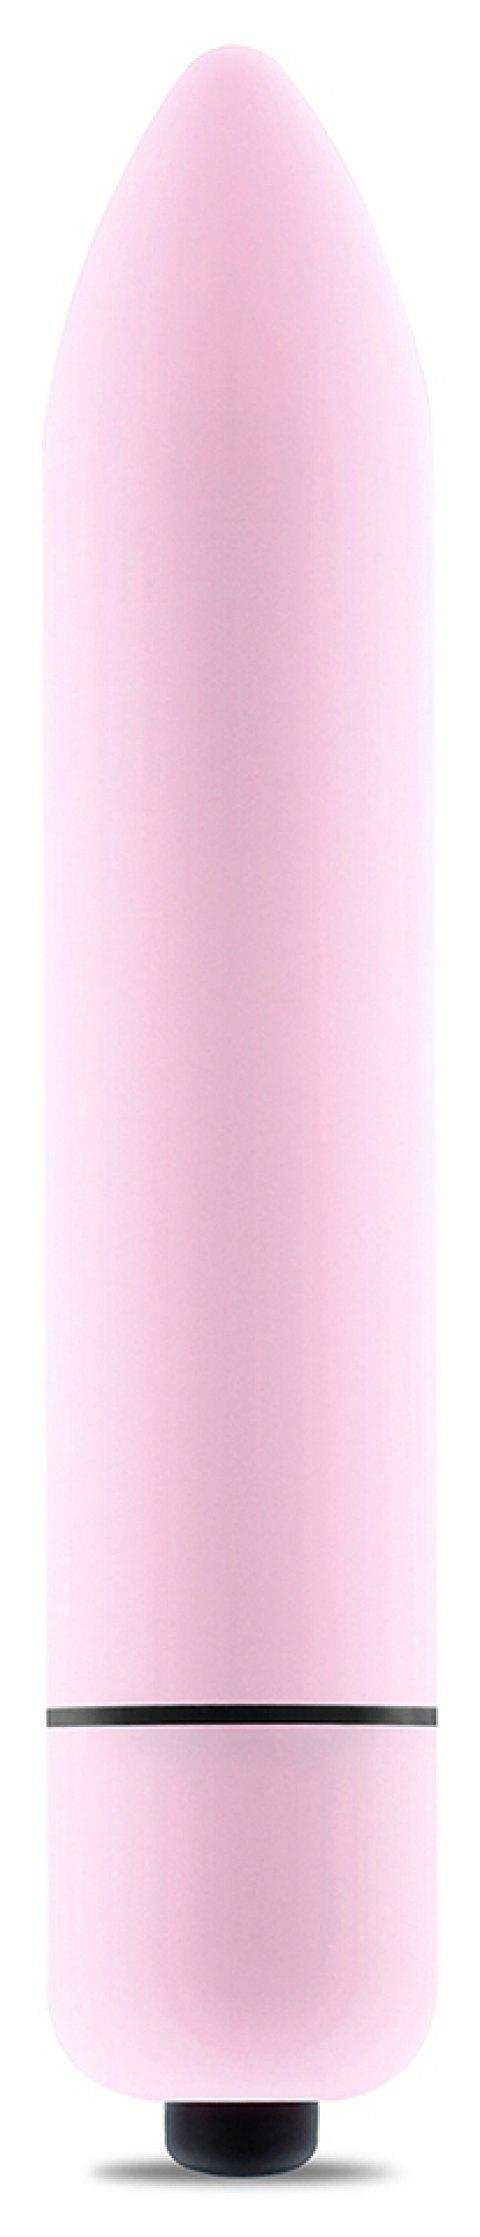 dff60592bdbd03 Waterproof 10 Frequency Vibrating Mini Bullet Vibe Massager Vibrator for  Women - PINK